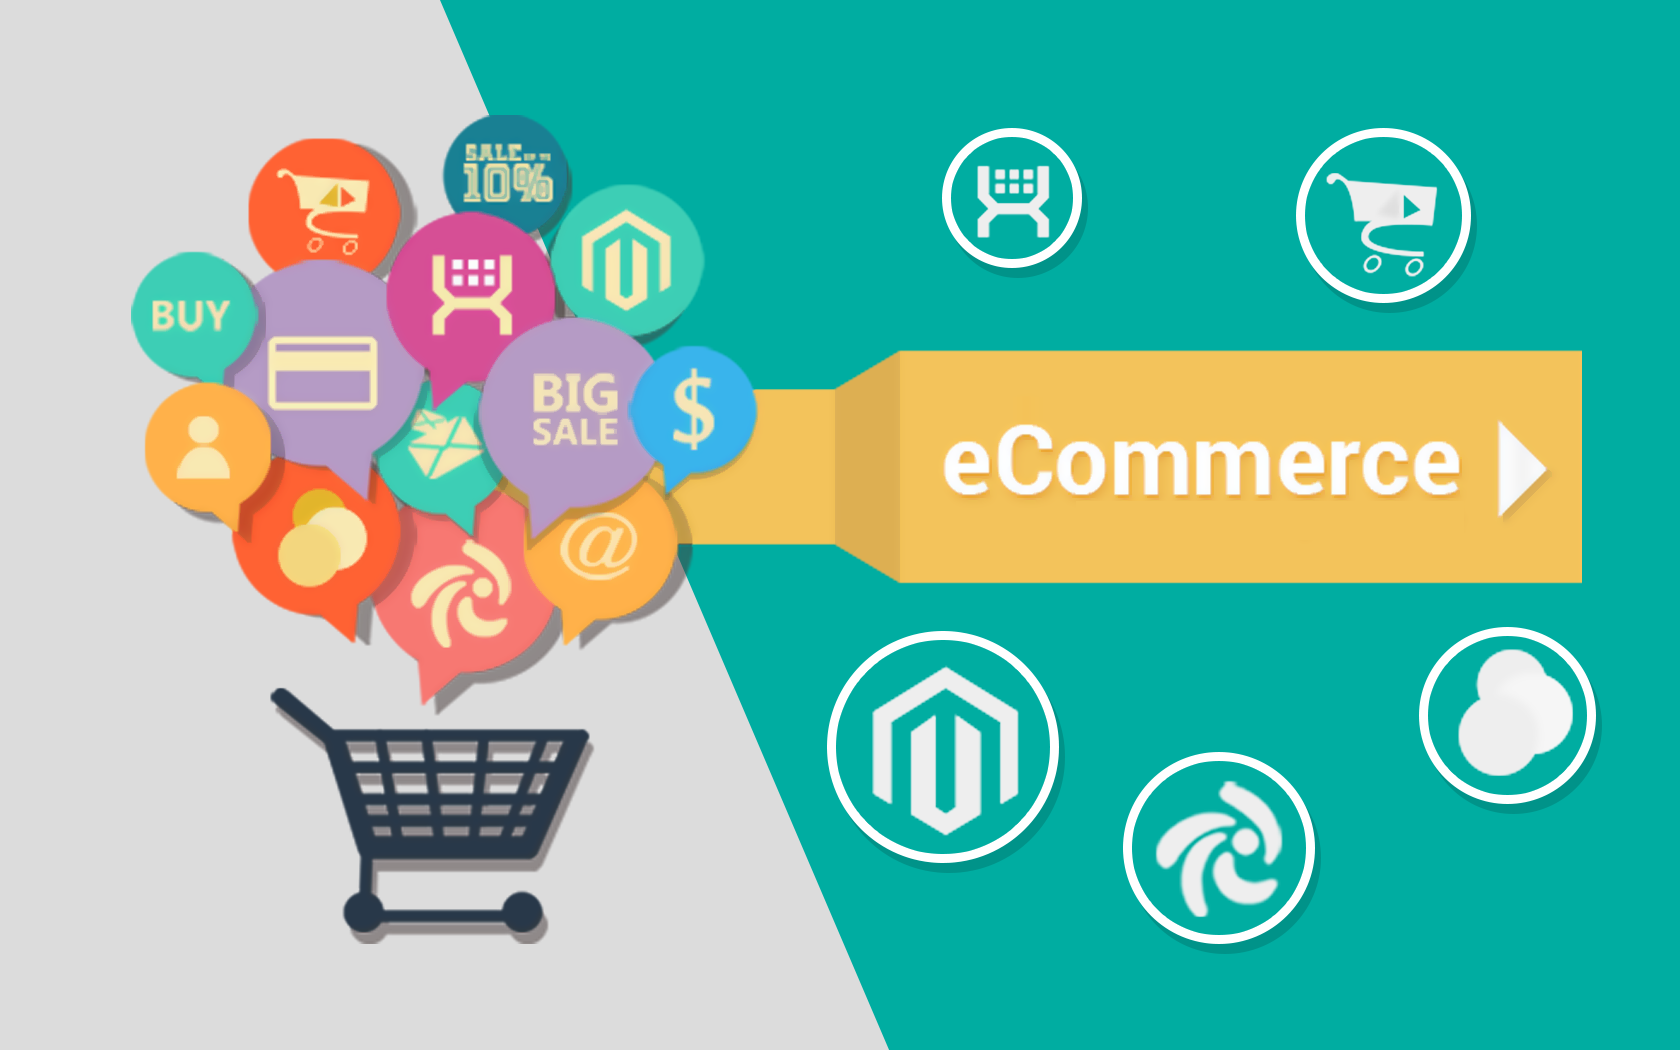 How to Get the Most Out of Your eCommerce Experience